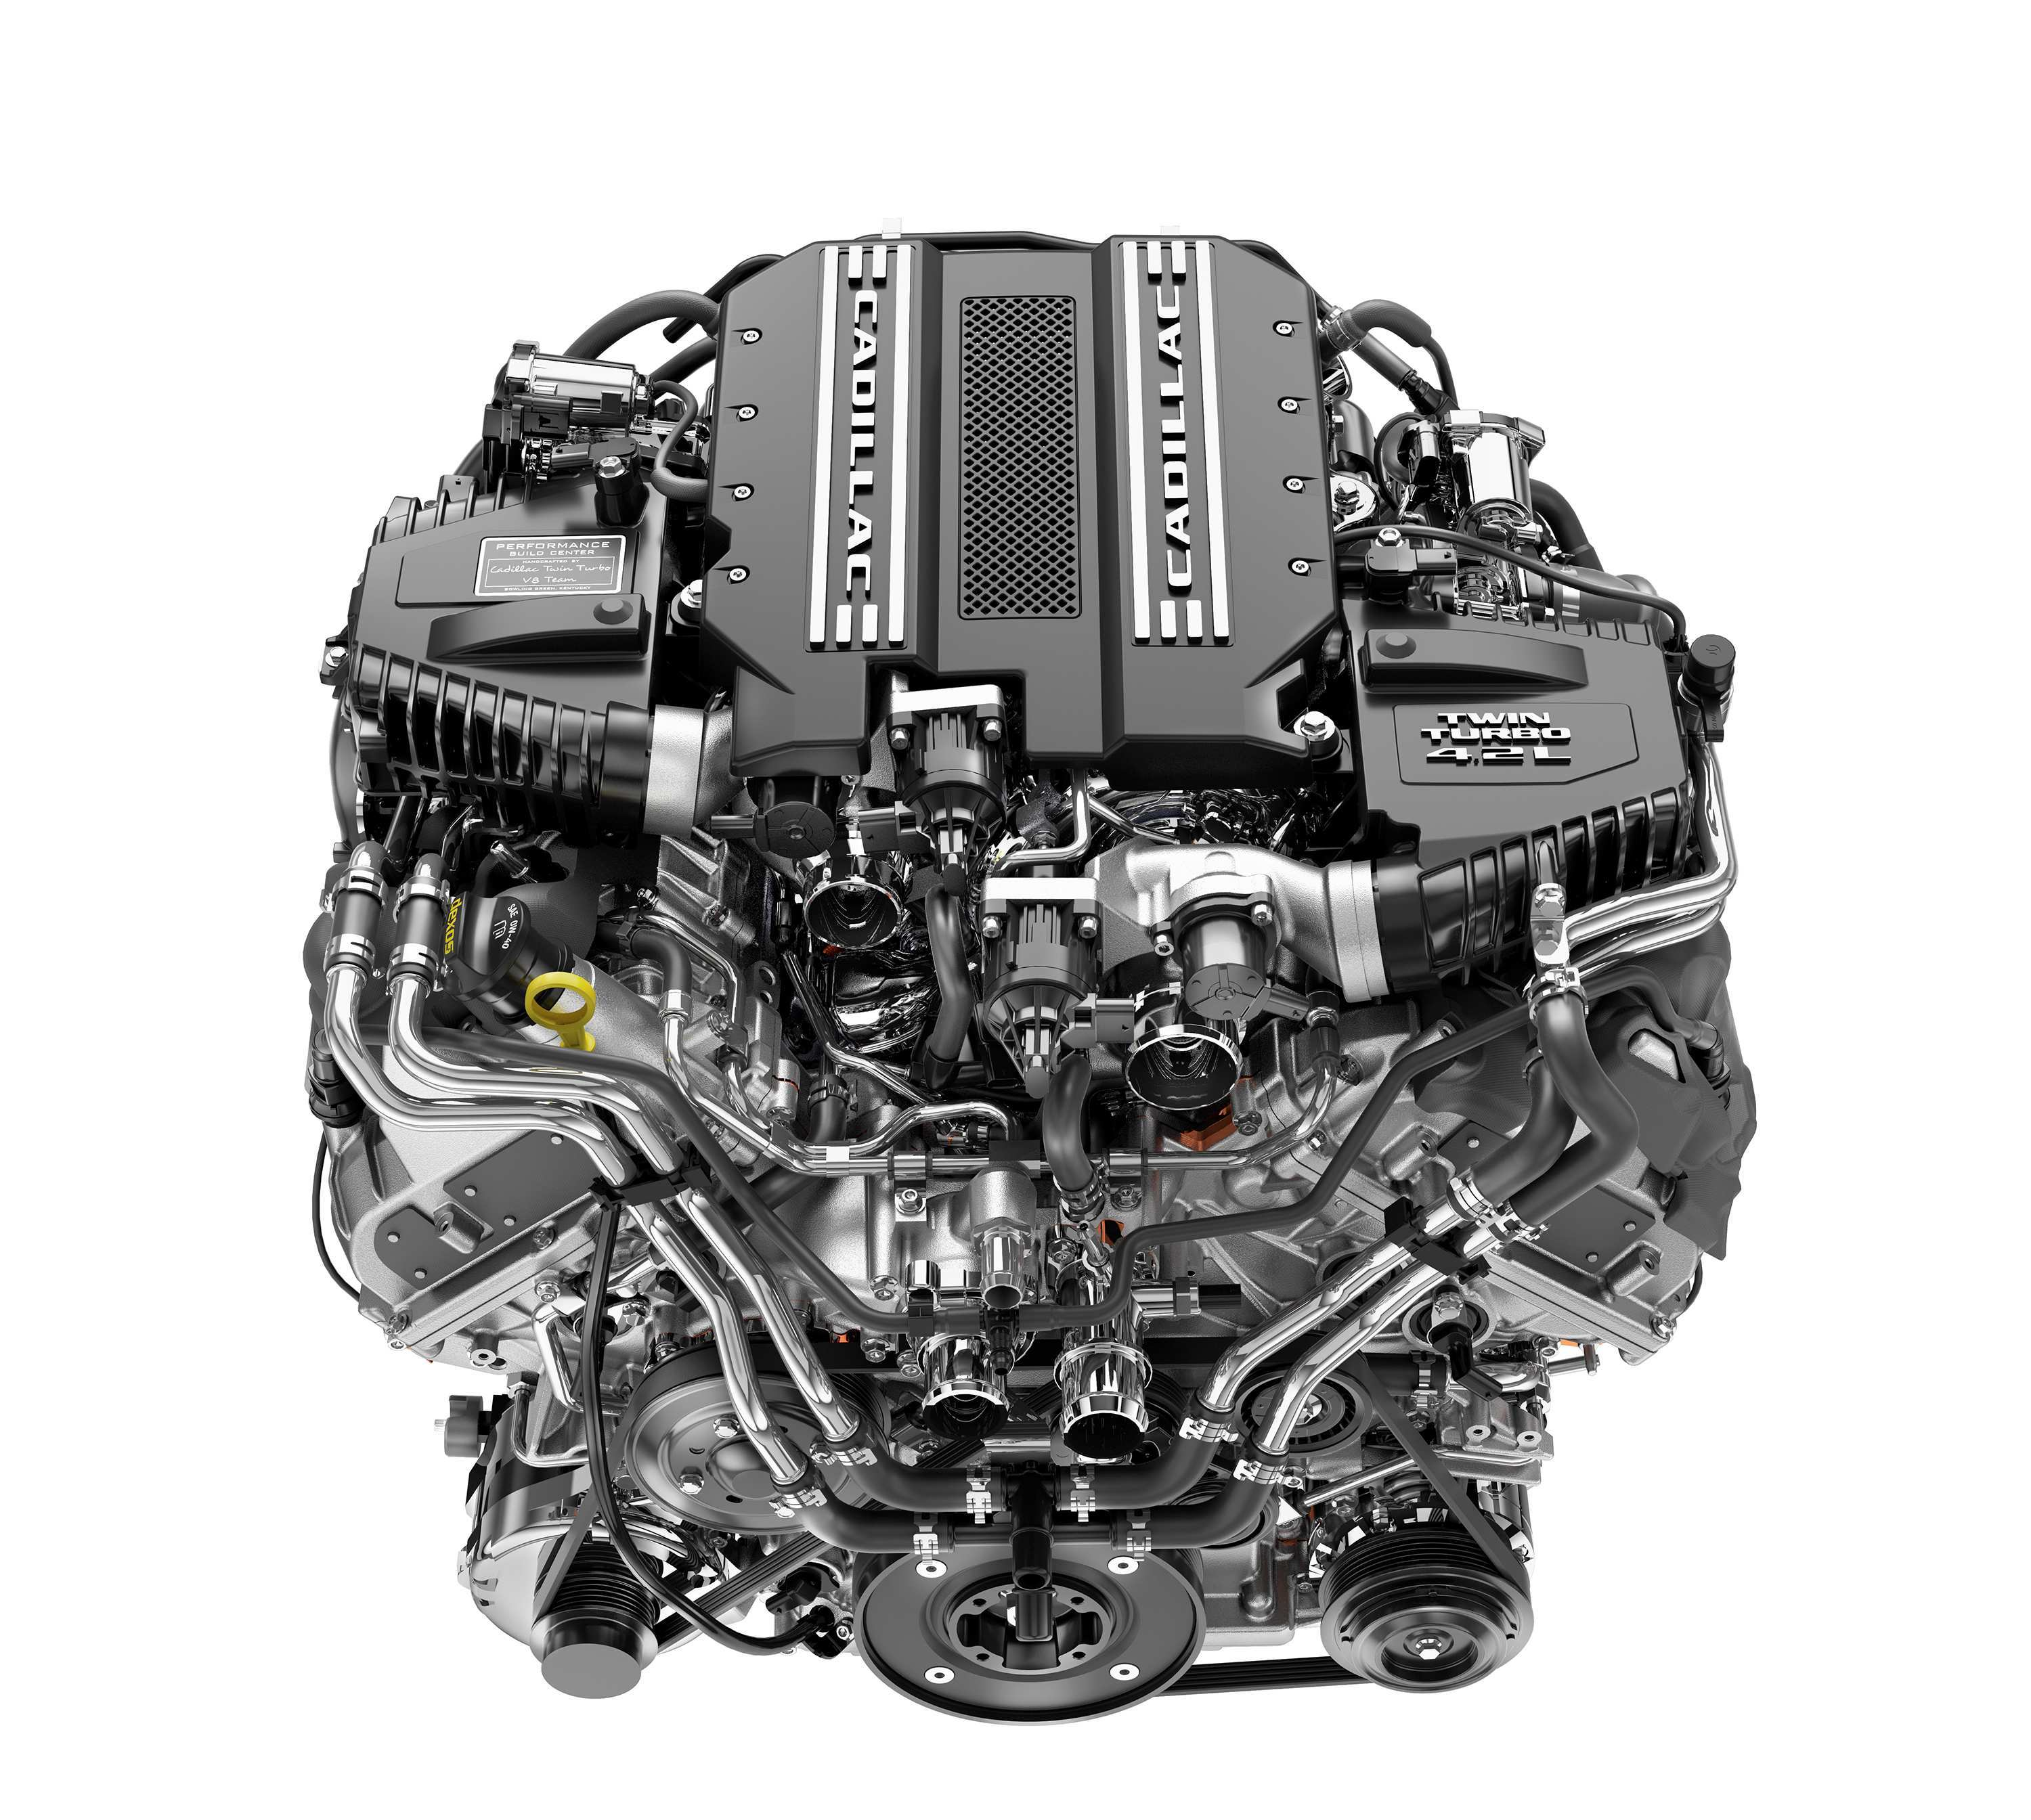 42 Gallery of 2019 Cadillac Twin Turbo V8 First Drive with 2019 Cadillac Twin Turbo V8